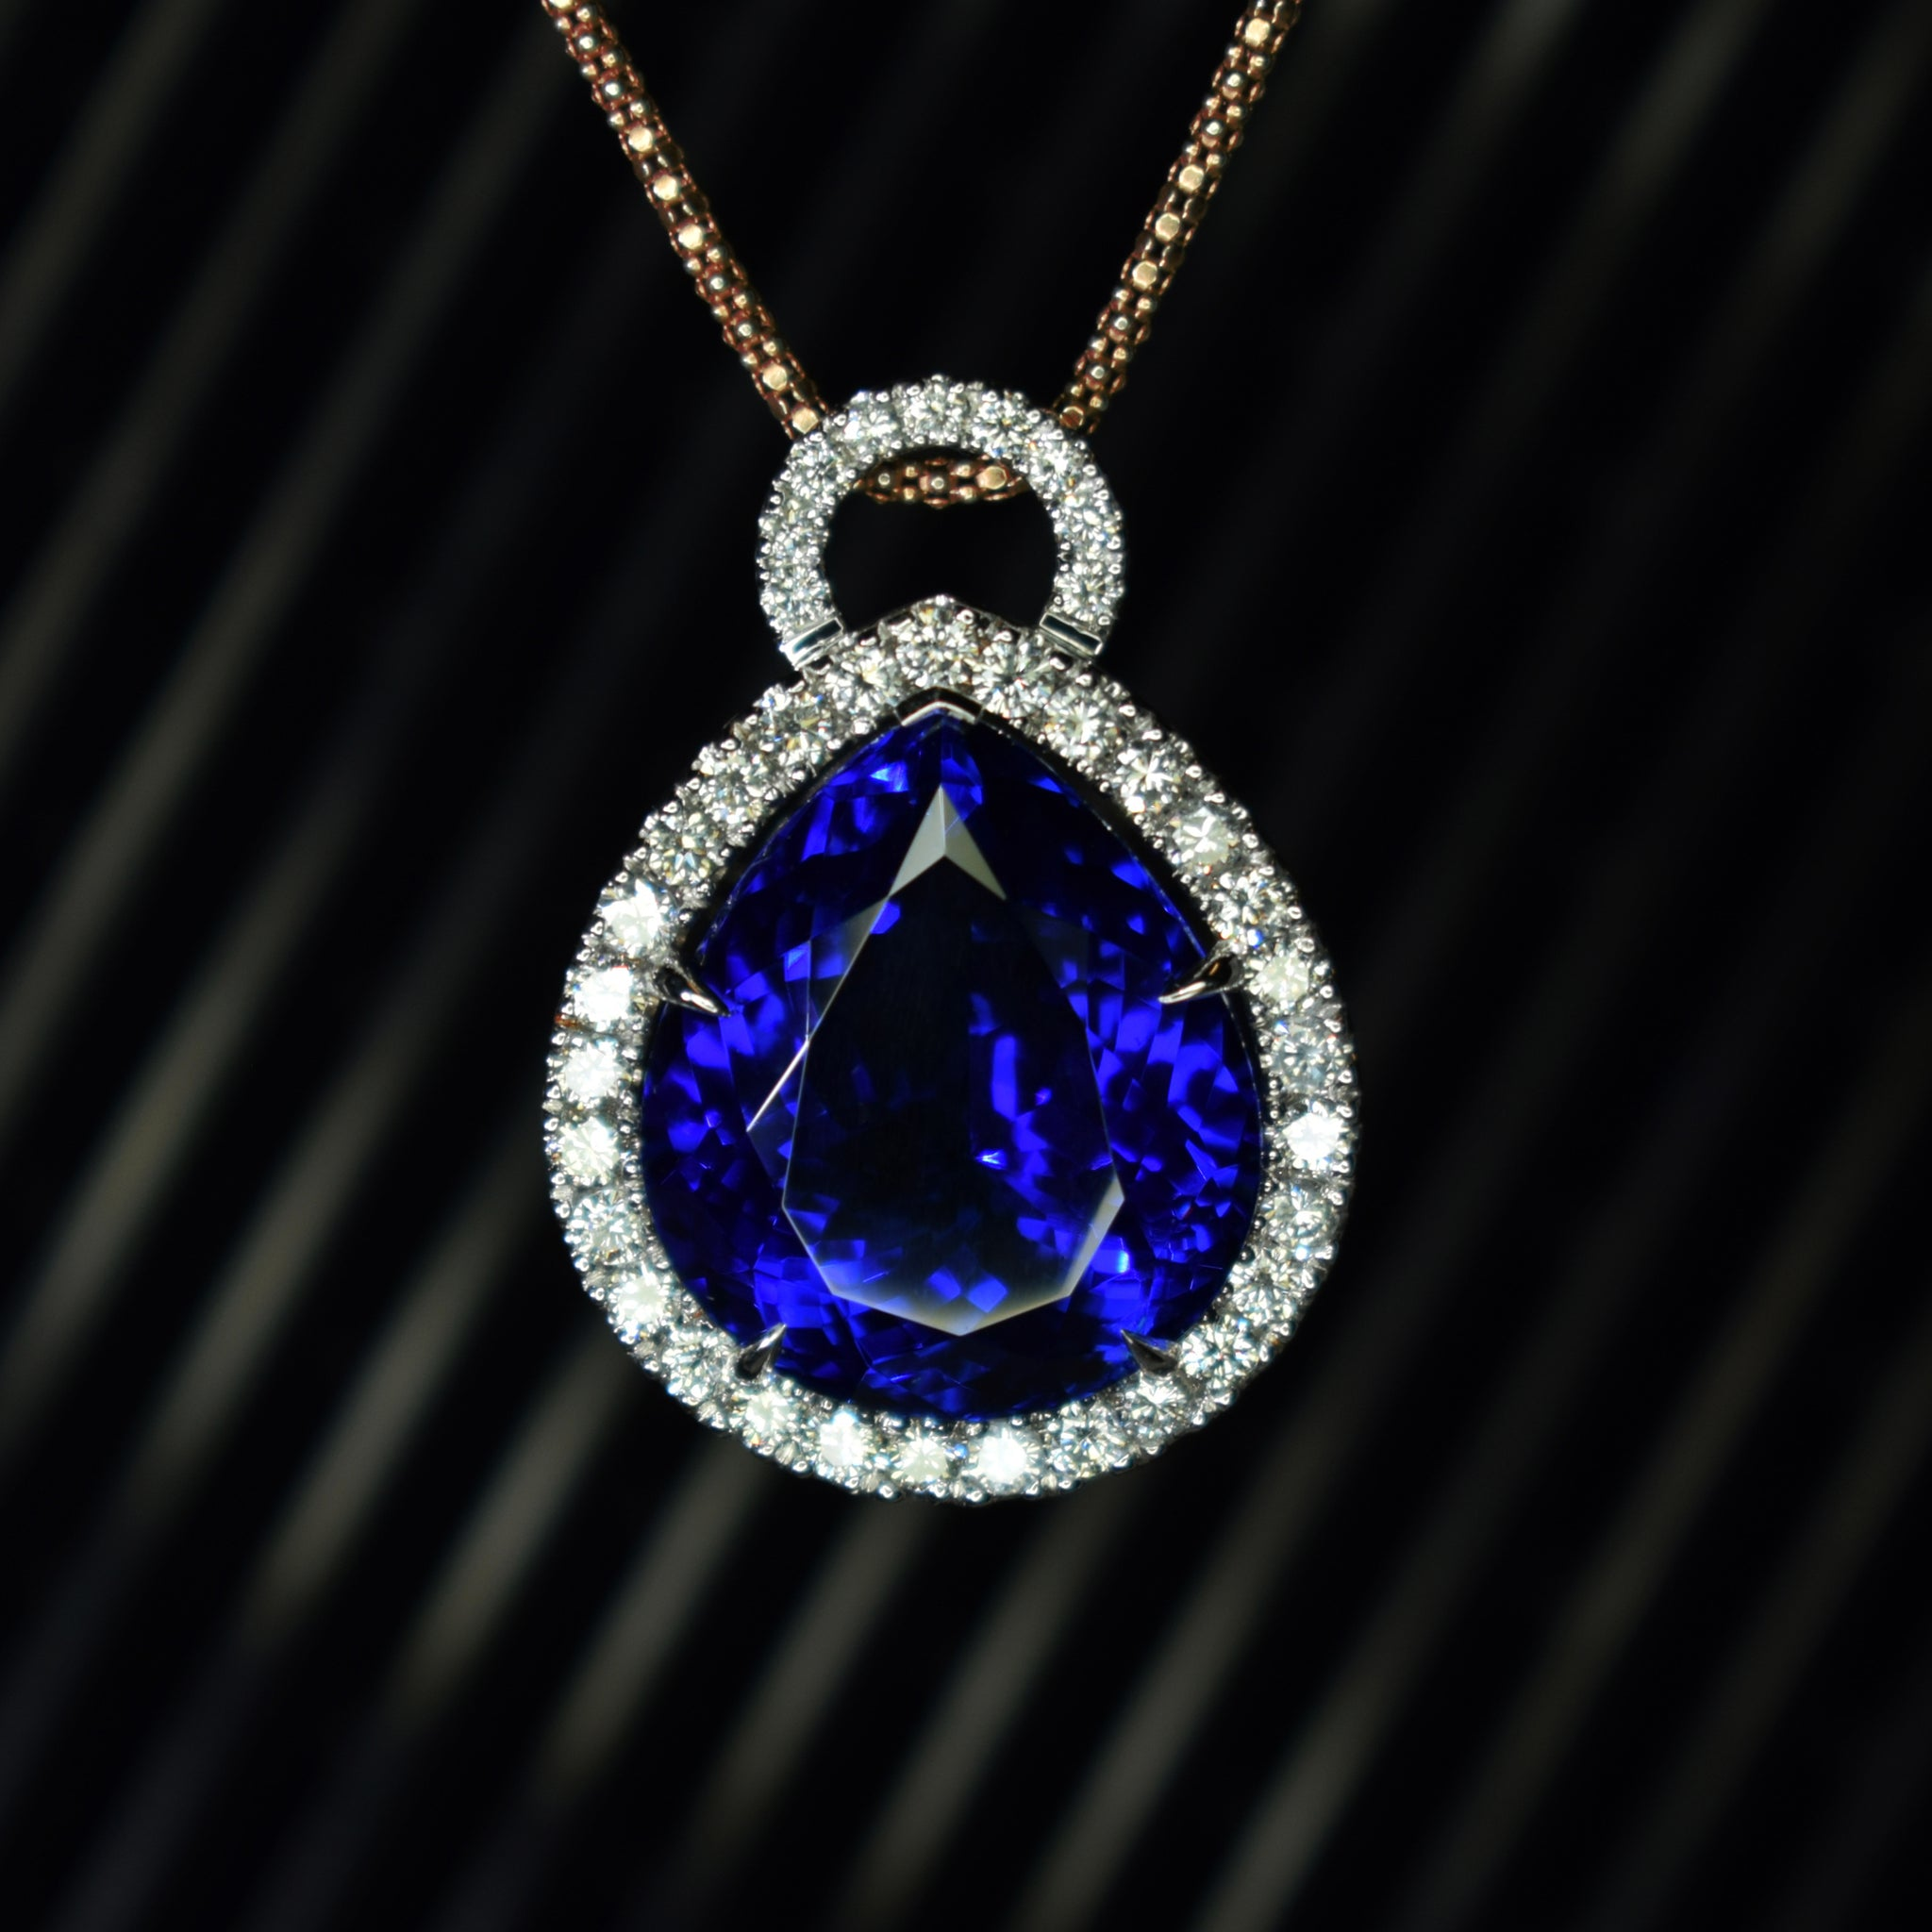 21ct pear shape tanzanite with diamond halo pendant